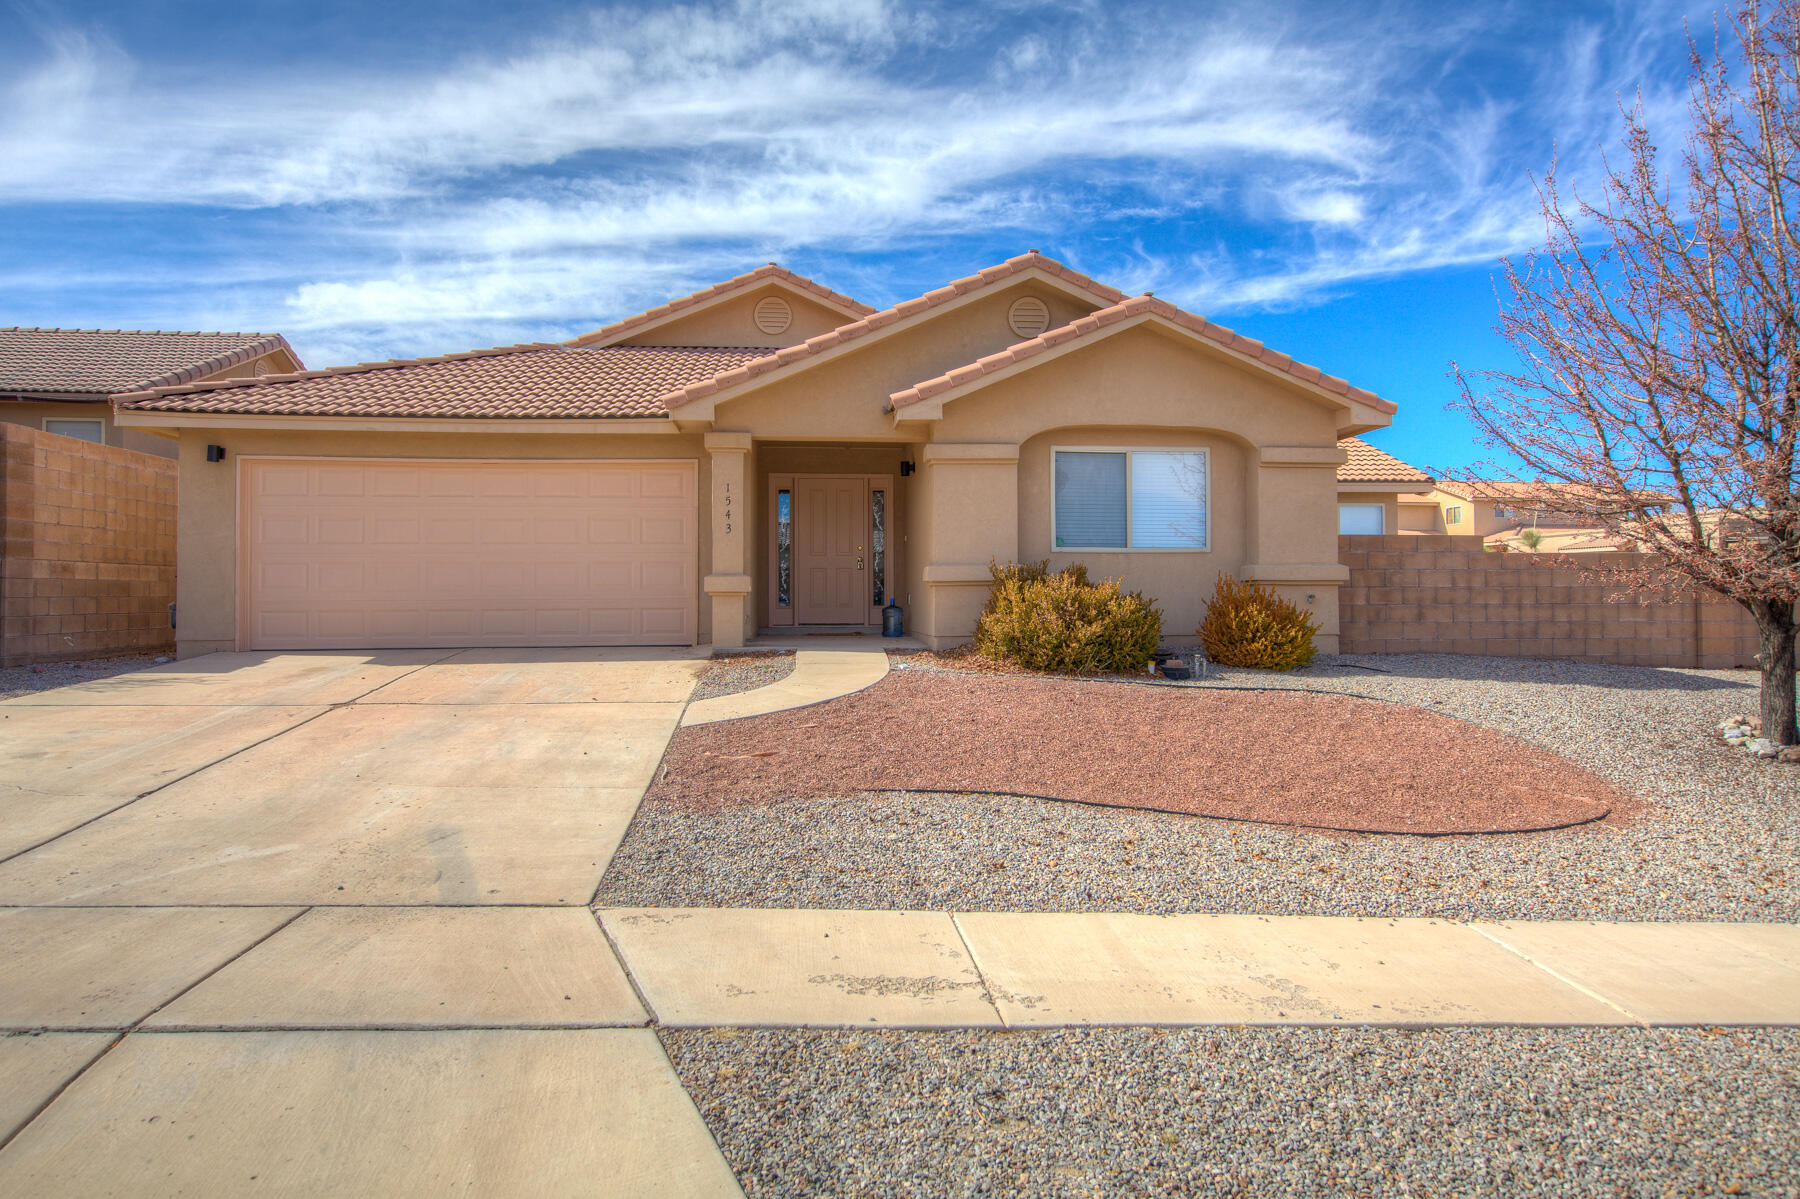 : One story, open concept floorplan situated on a corner lot. This Joe Boyden built home features 4 bedrooms, a spacious great room with a fireplace and vaulted ceilings. Open kitchen with  stainless steel appliances, pantry, and bar. Owner's suite with two closets, bath with separate garden tub, separate shower and double sinks. The other 3 bedrooms are on the opposite side of the house with an adjacent full bath. Nice  flooring in the kitchen and living area, separate laundry room, 2 car garage, fully landscaped backyard, and covered patio.